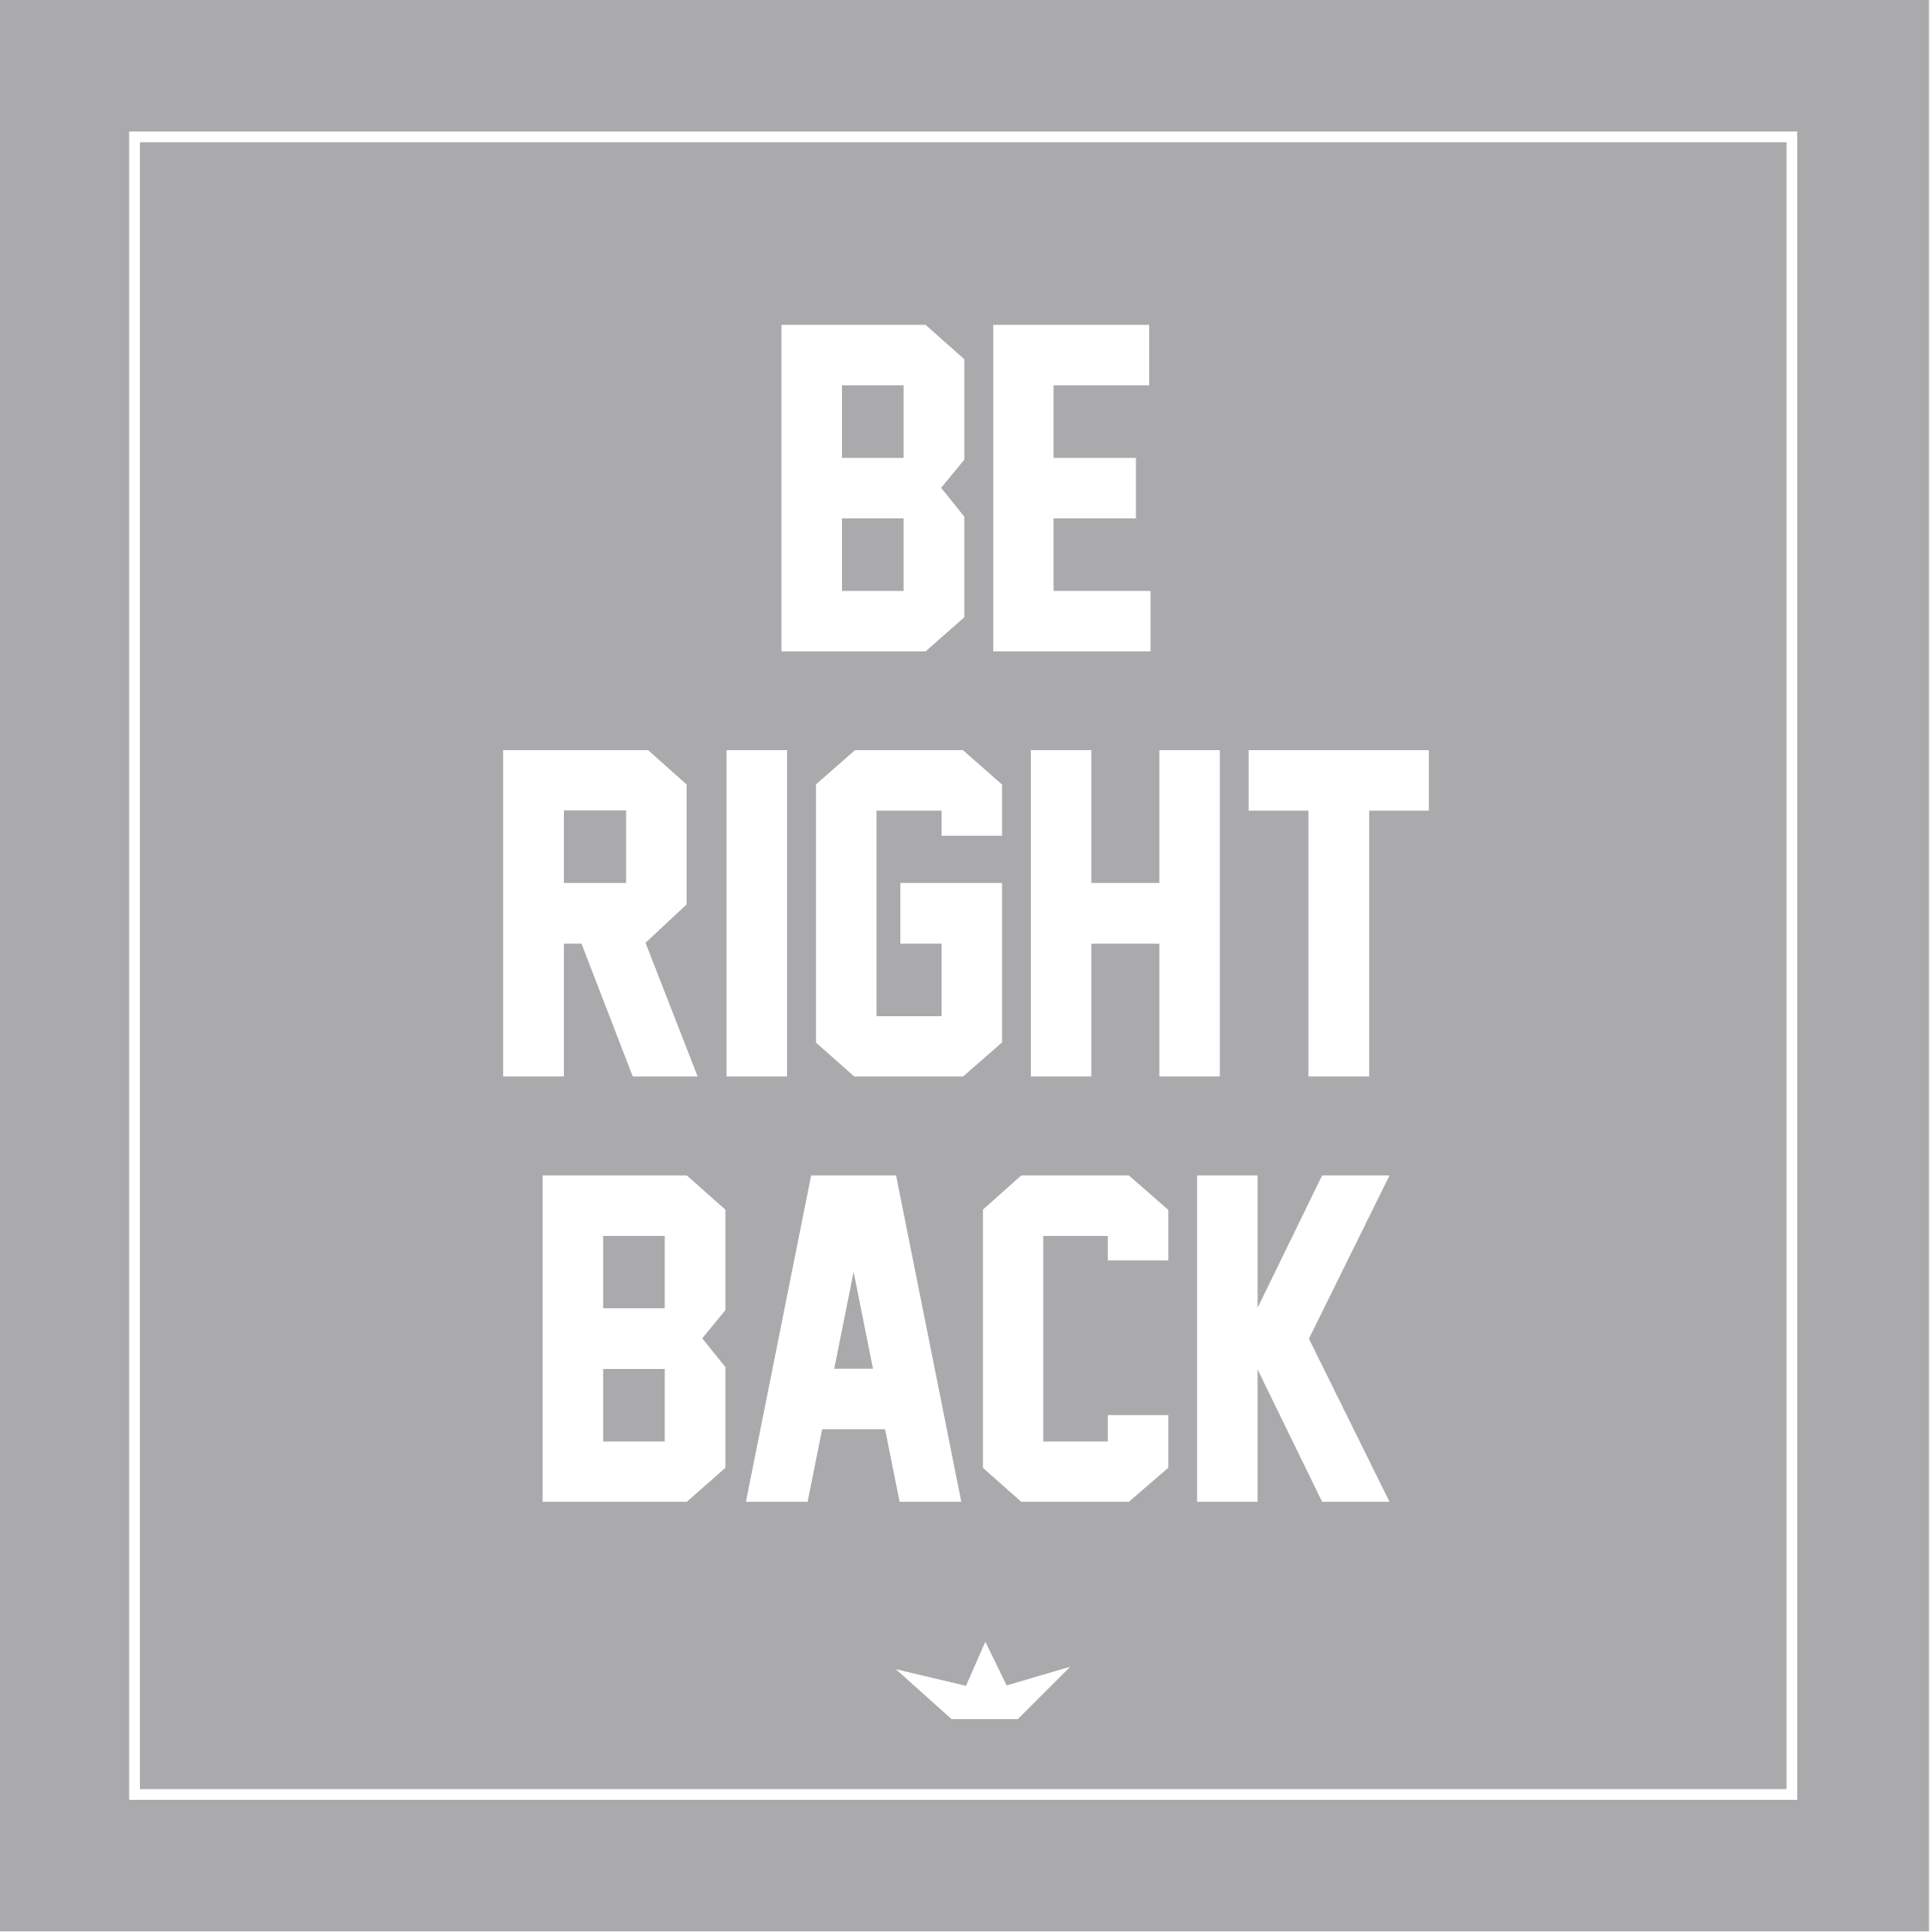 Be Right Back Quotes Luggage Tags Goede Reis